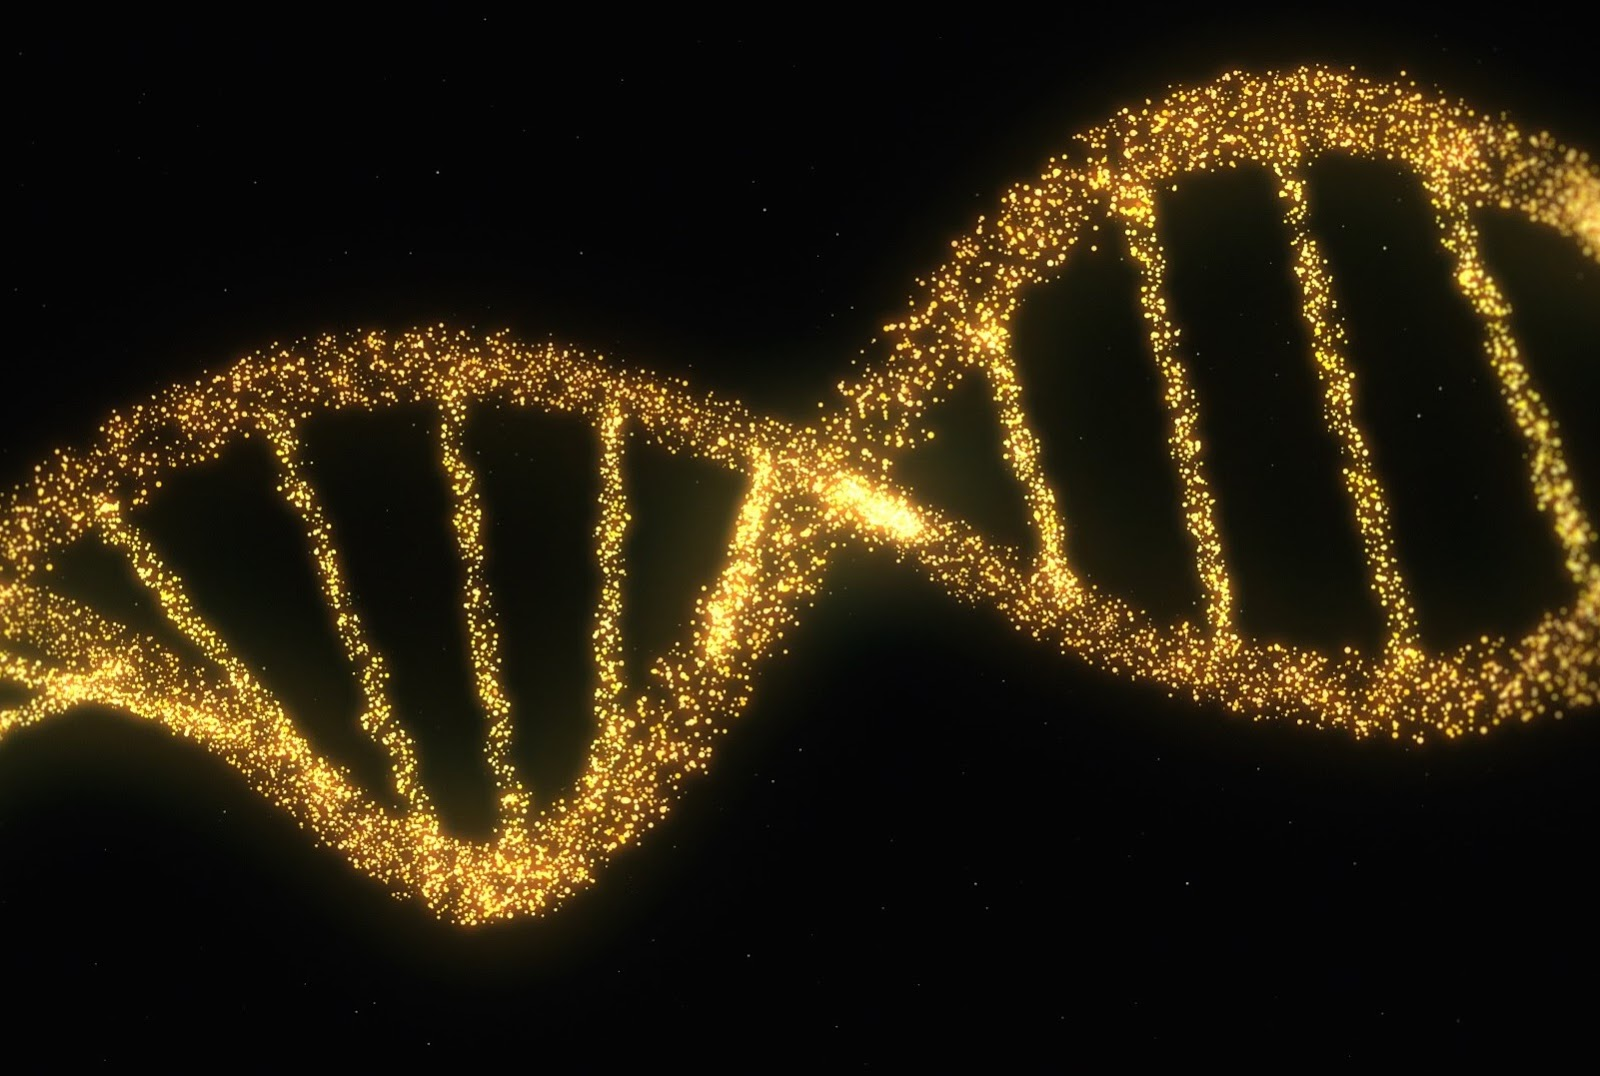 about the human genome The genome's been mapped but what does it mean arguably the most significant scientific discovery of the new century, the mapping of the twenty-three pairs of chromosomes that make up the human genome raises almost as many questions as it answers.